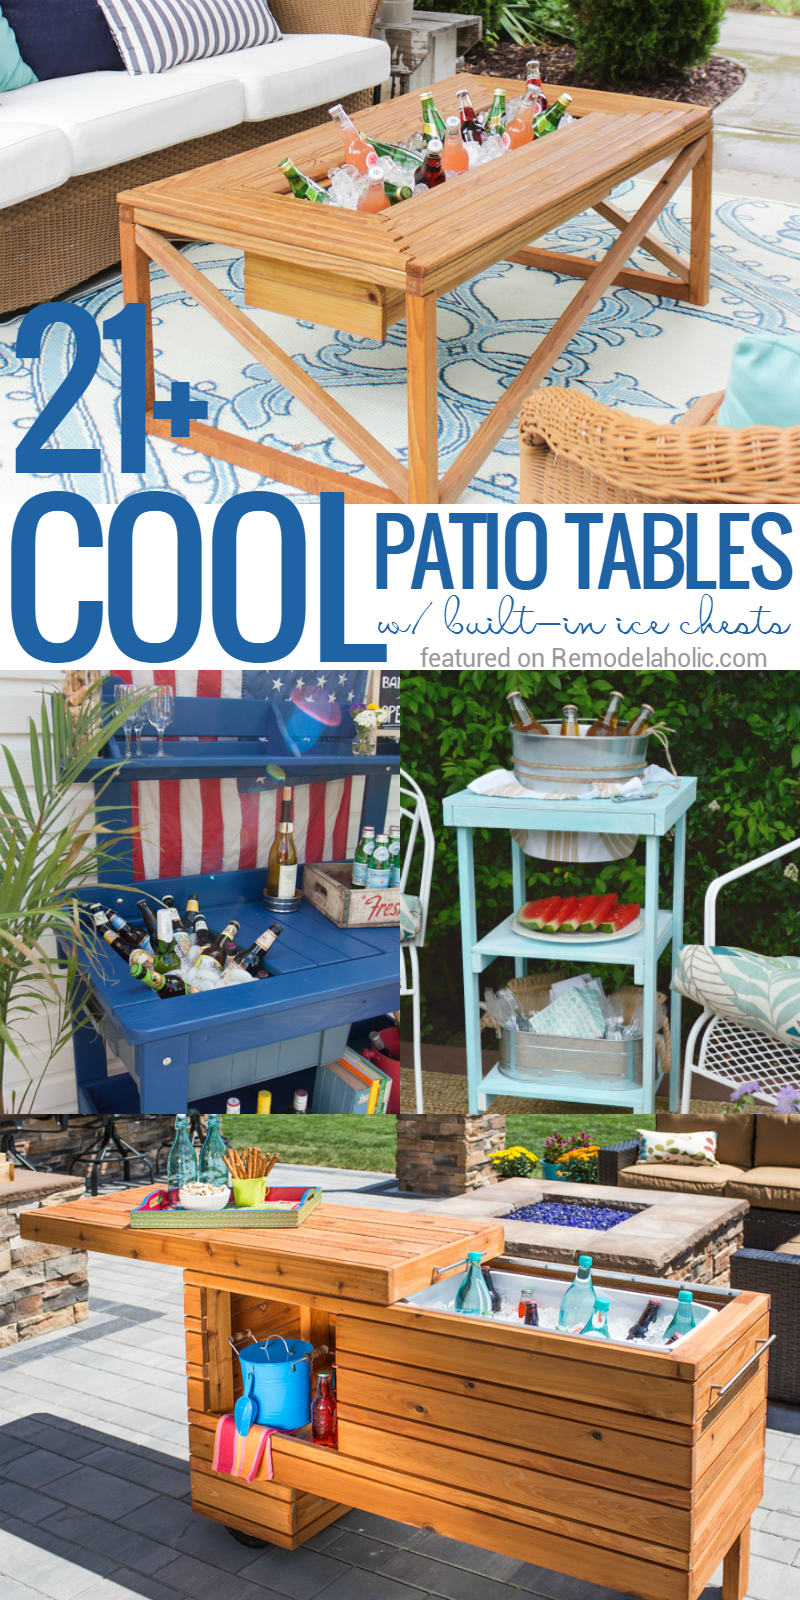 remodelaholic brilliant diy cooler tables for the patio with built ice chests and sinks outdoor side table beverage coolers boxes small white round tablecloth counter height